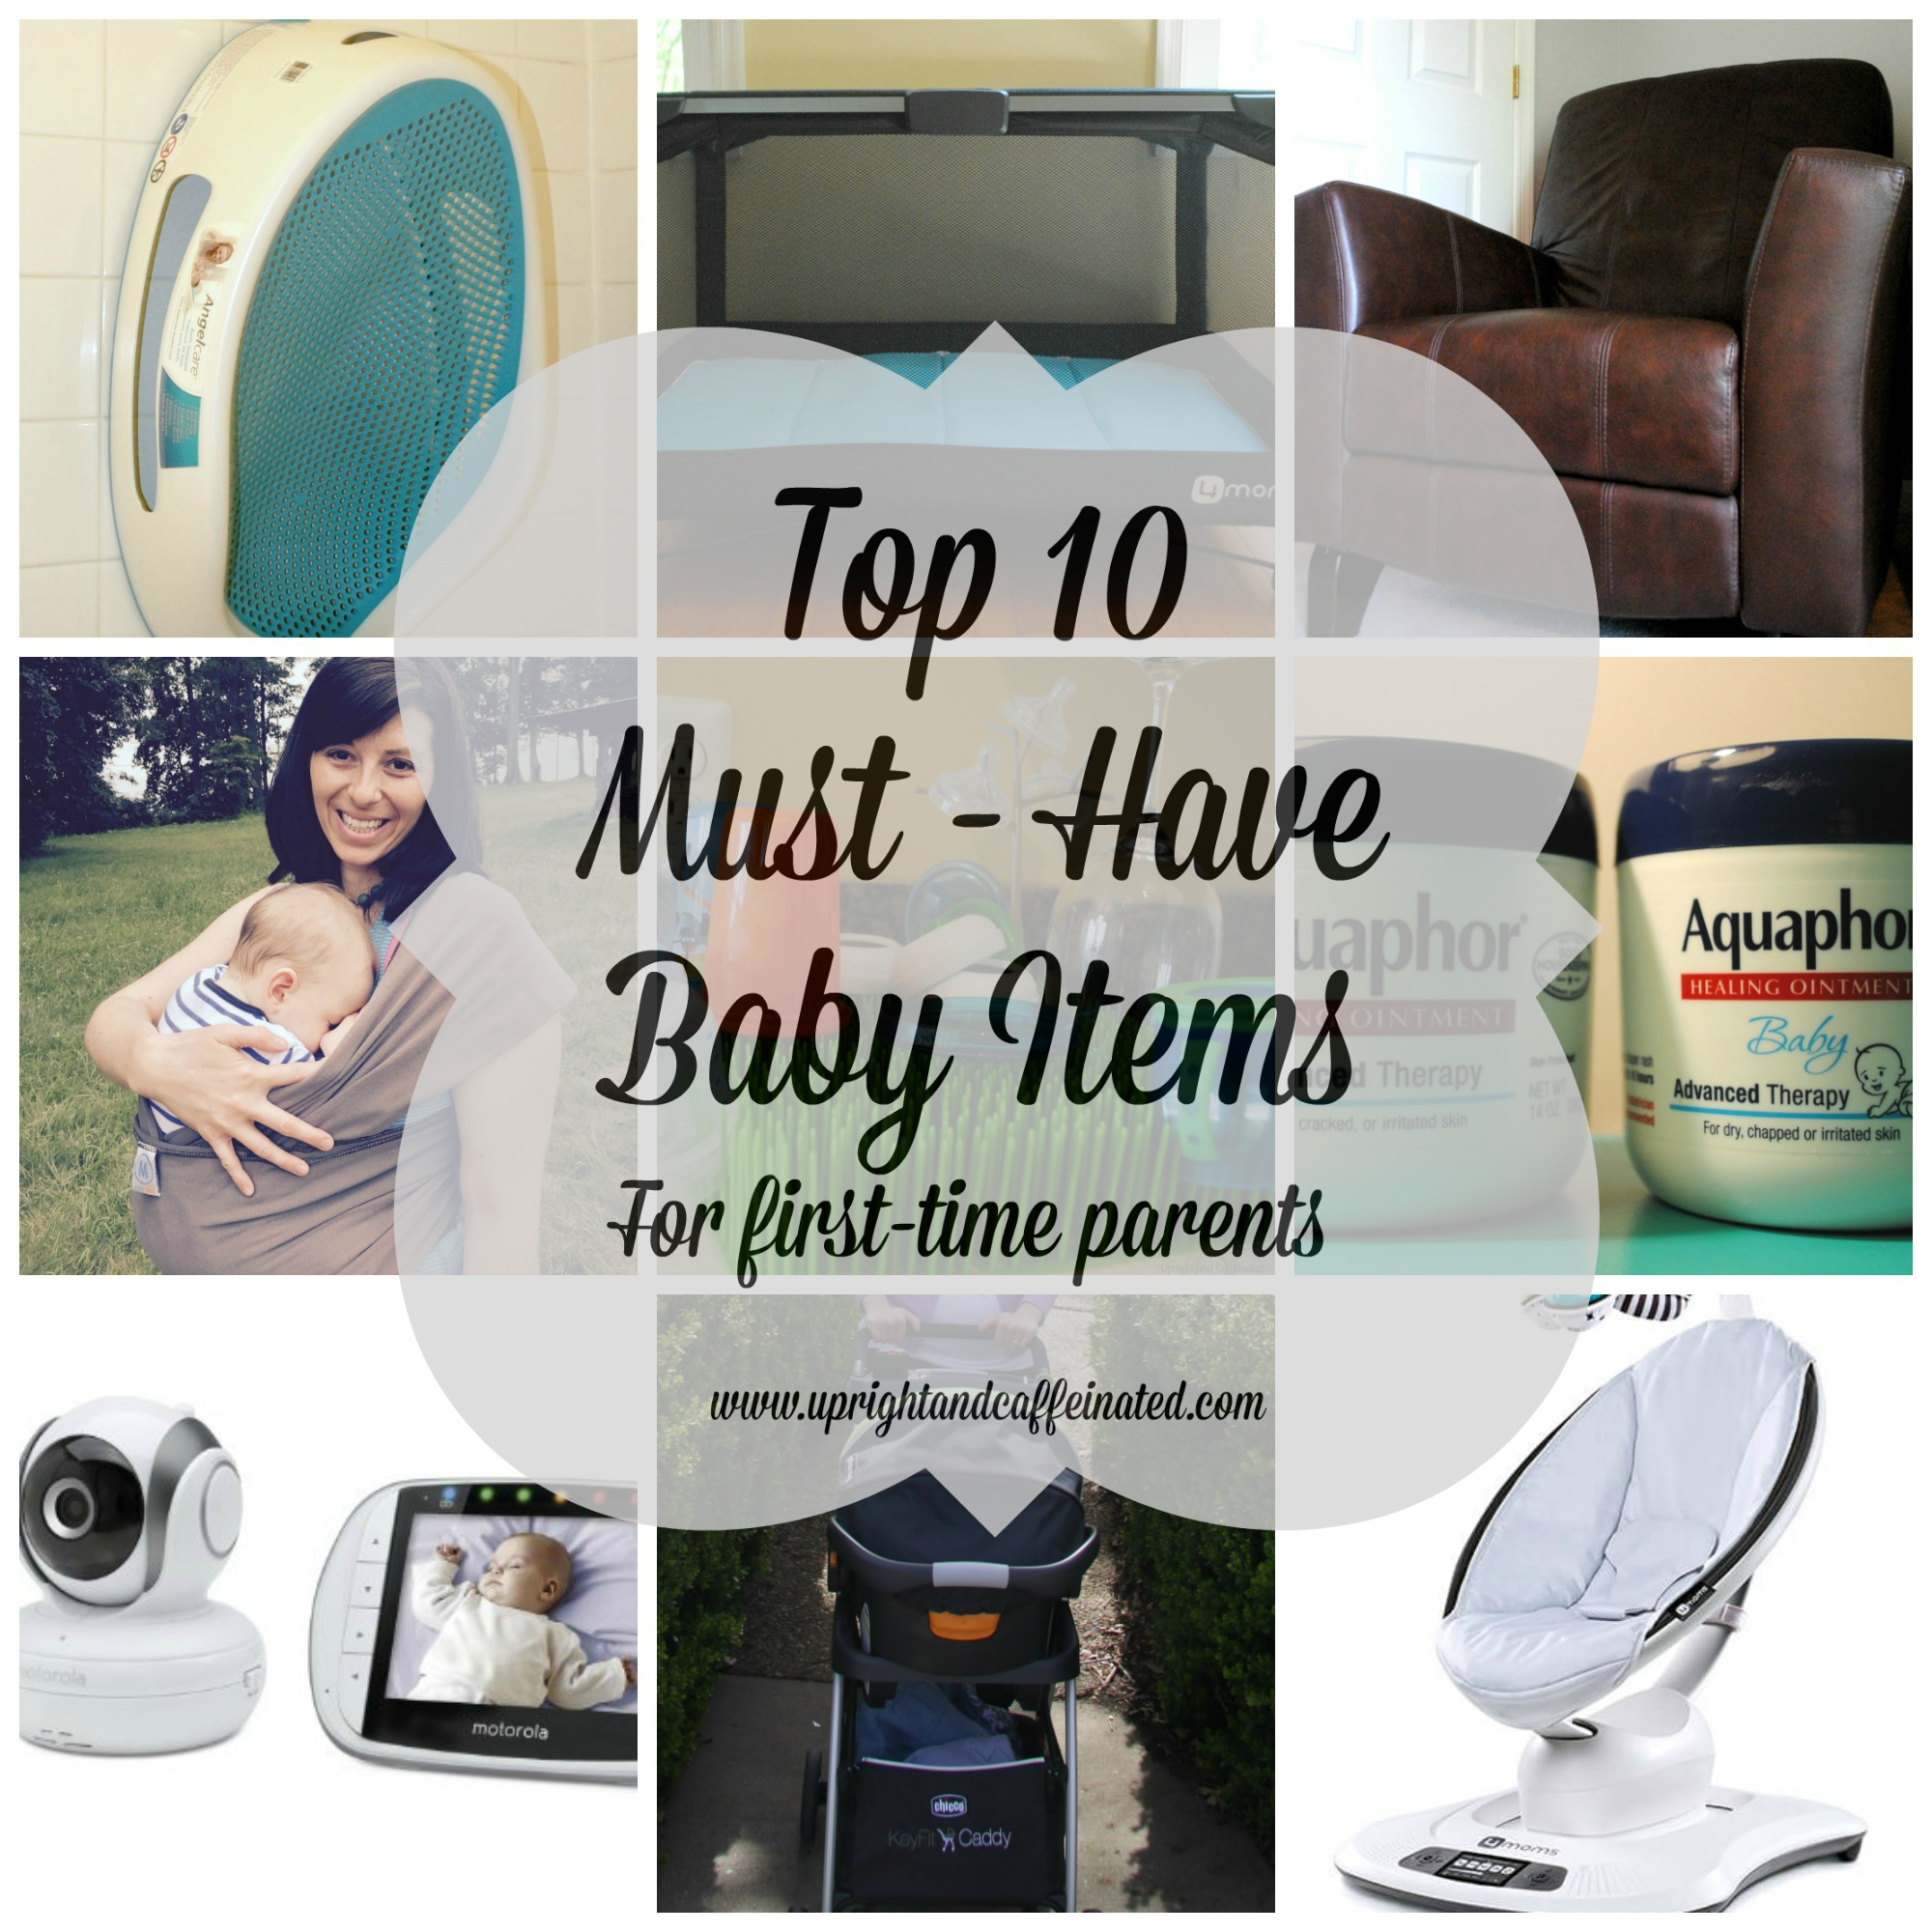 Top 10 Baby Items: Must-Haves For First Time Parents